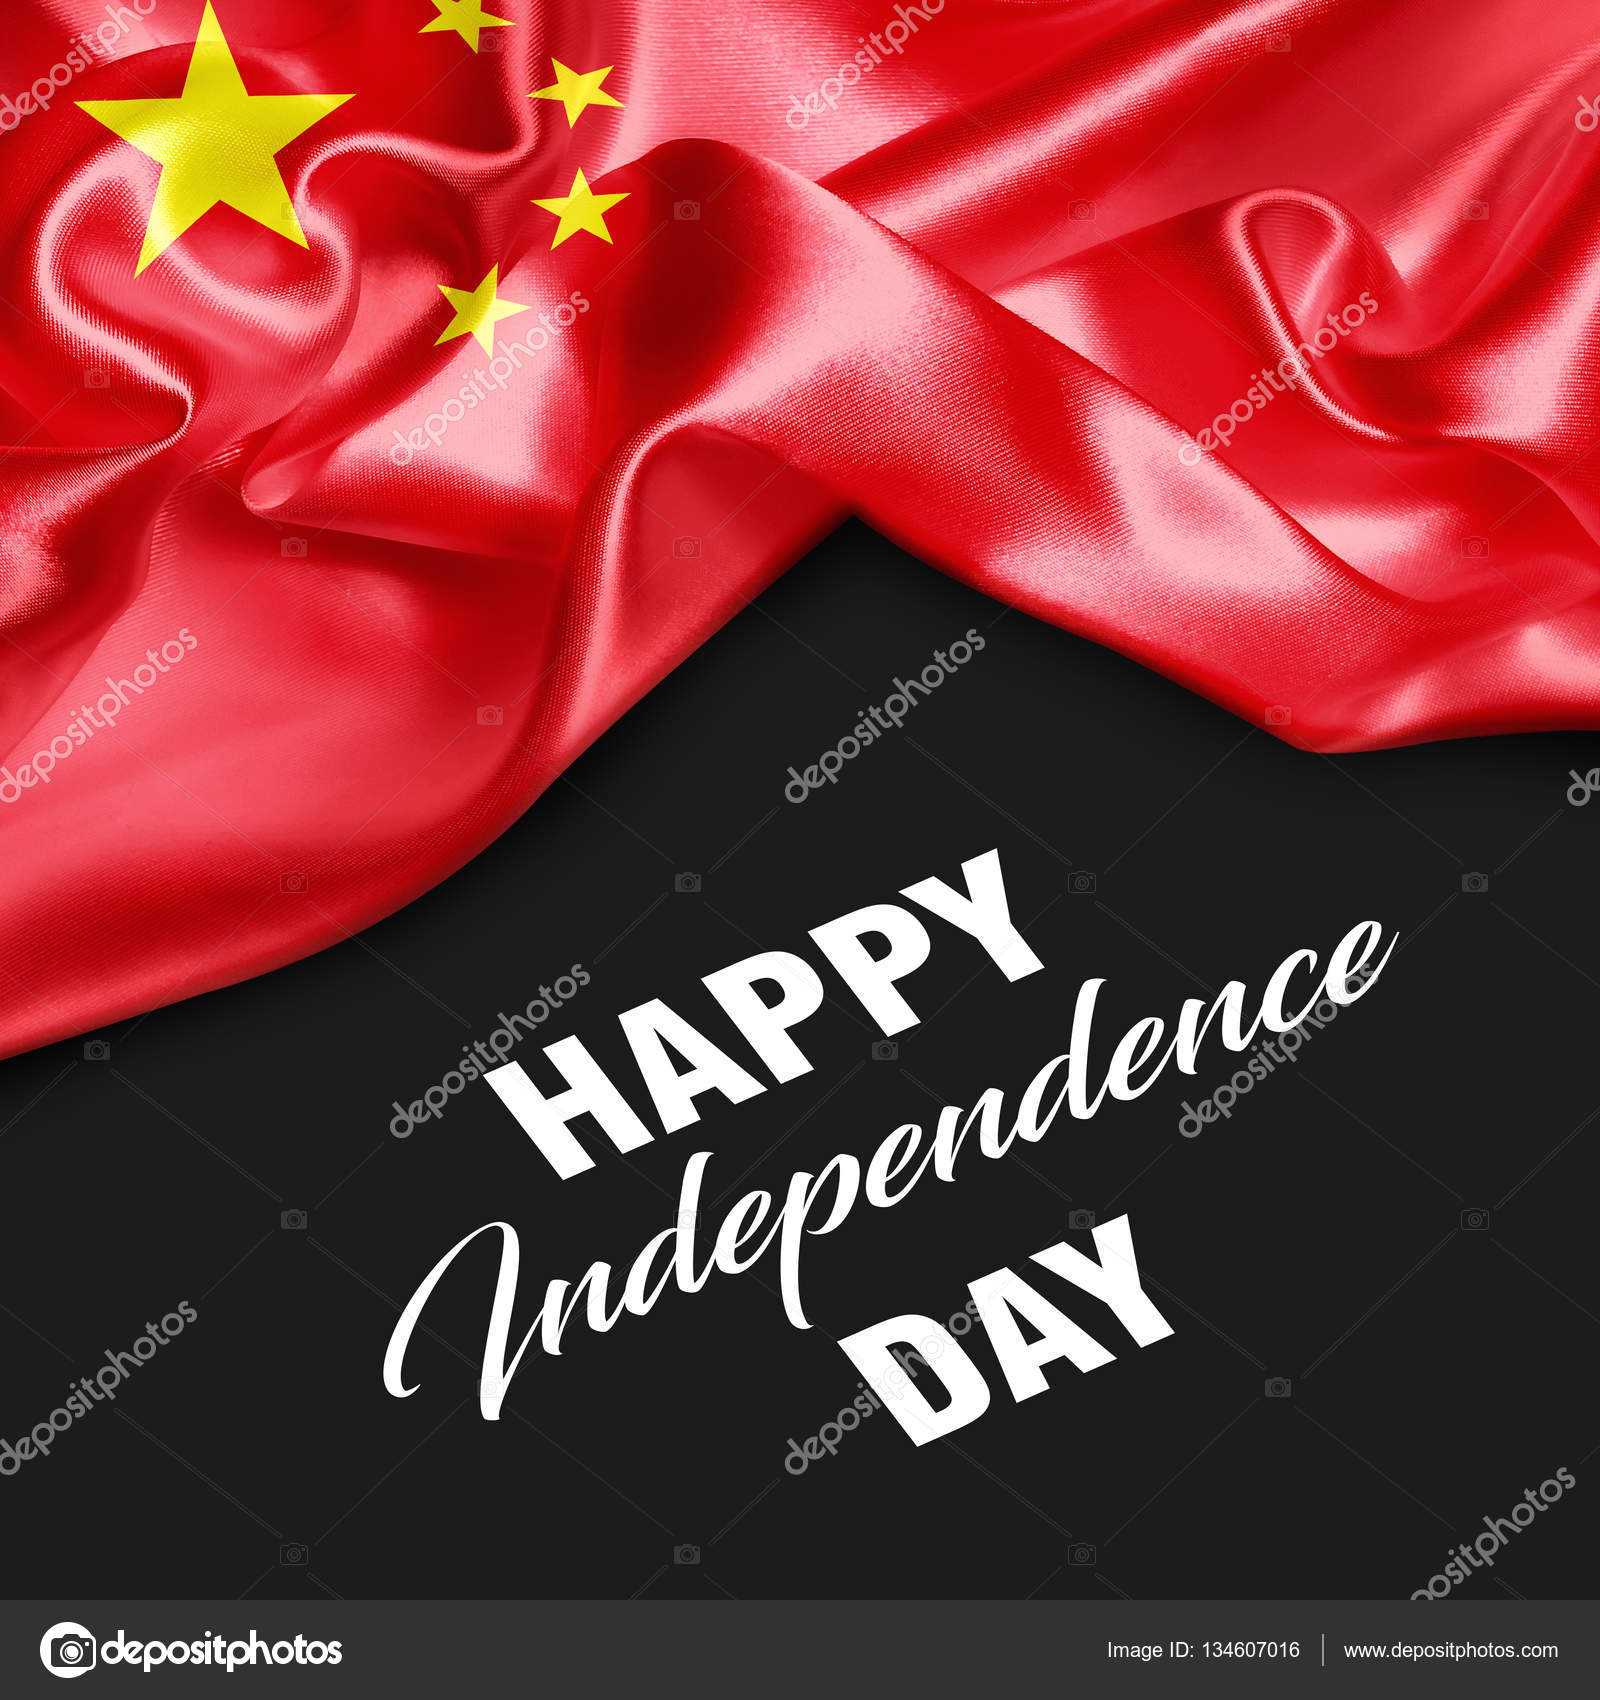 China Independence Day card — Stock Photo © ibrandify #134607016